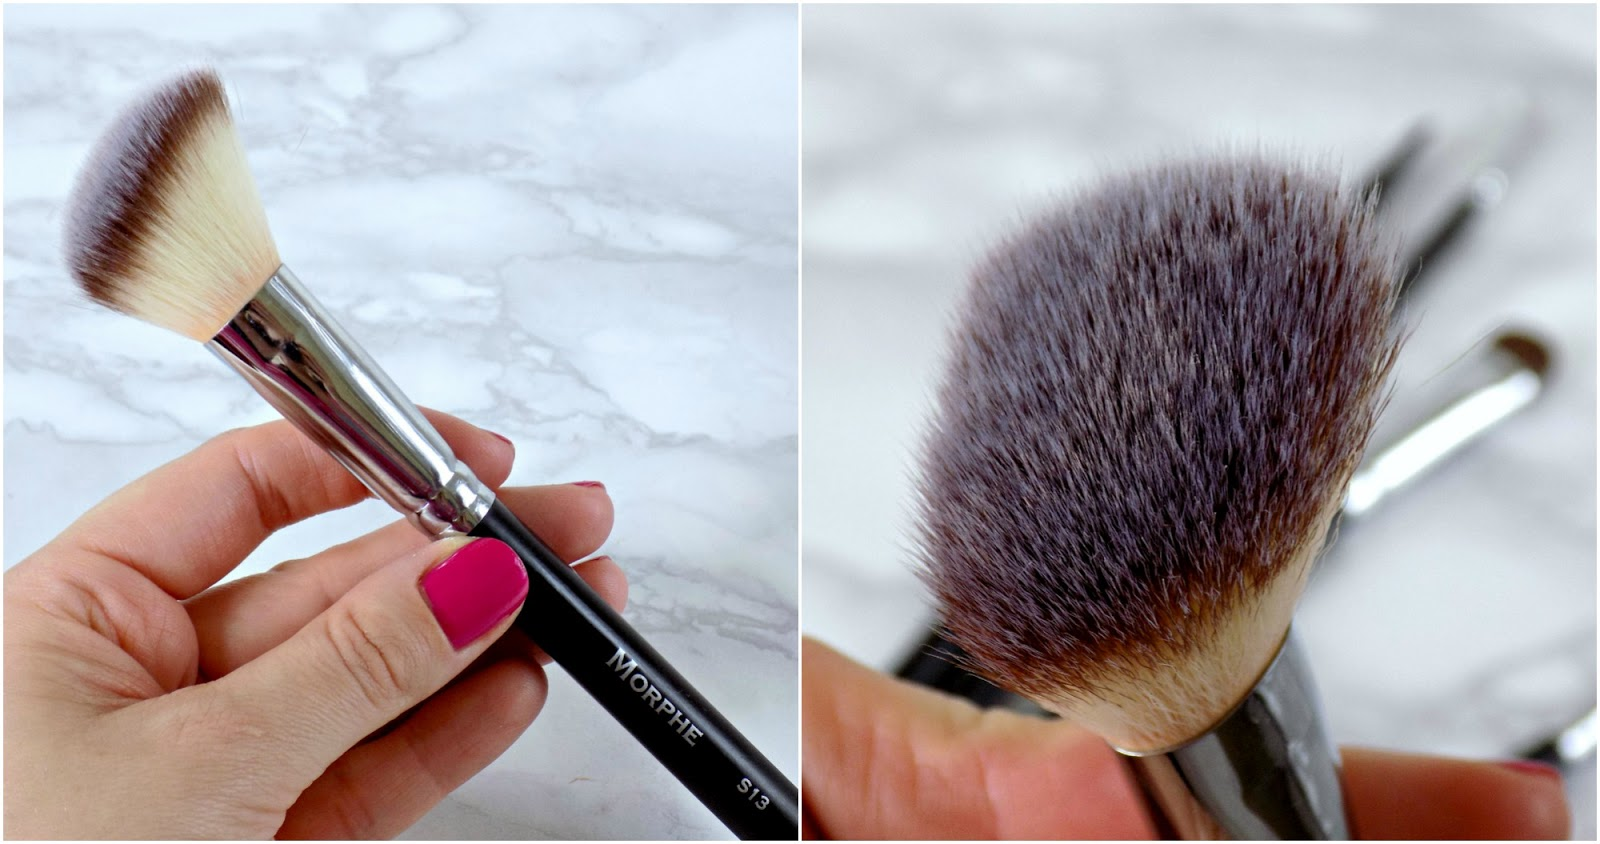 Morphe Brushes S13